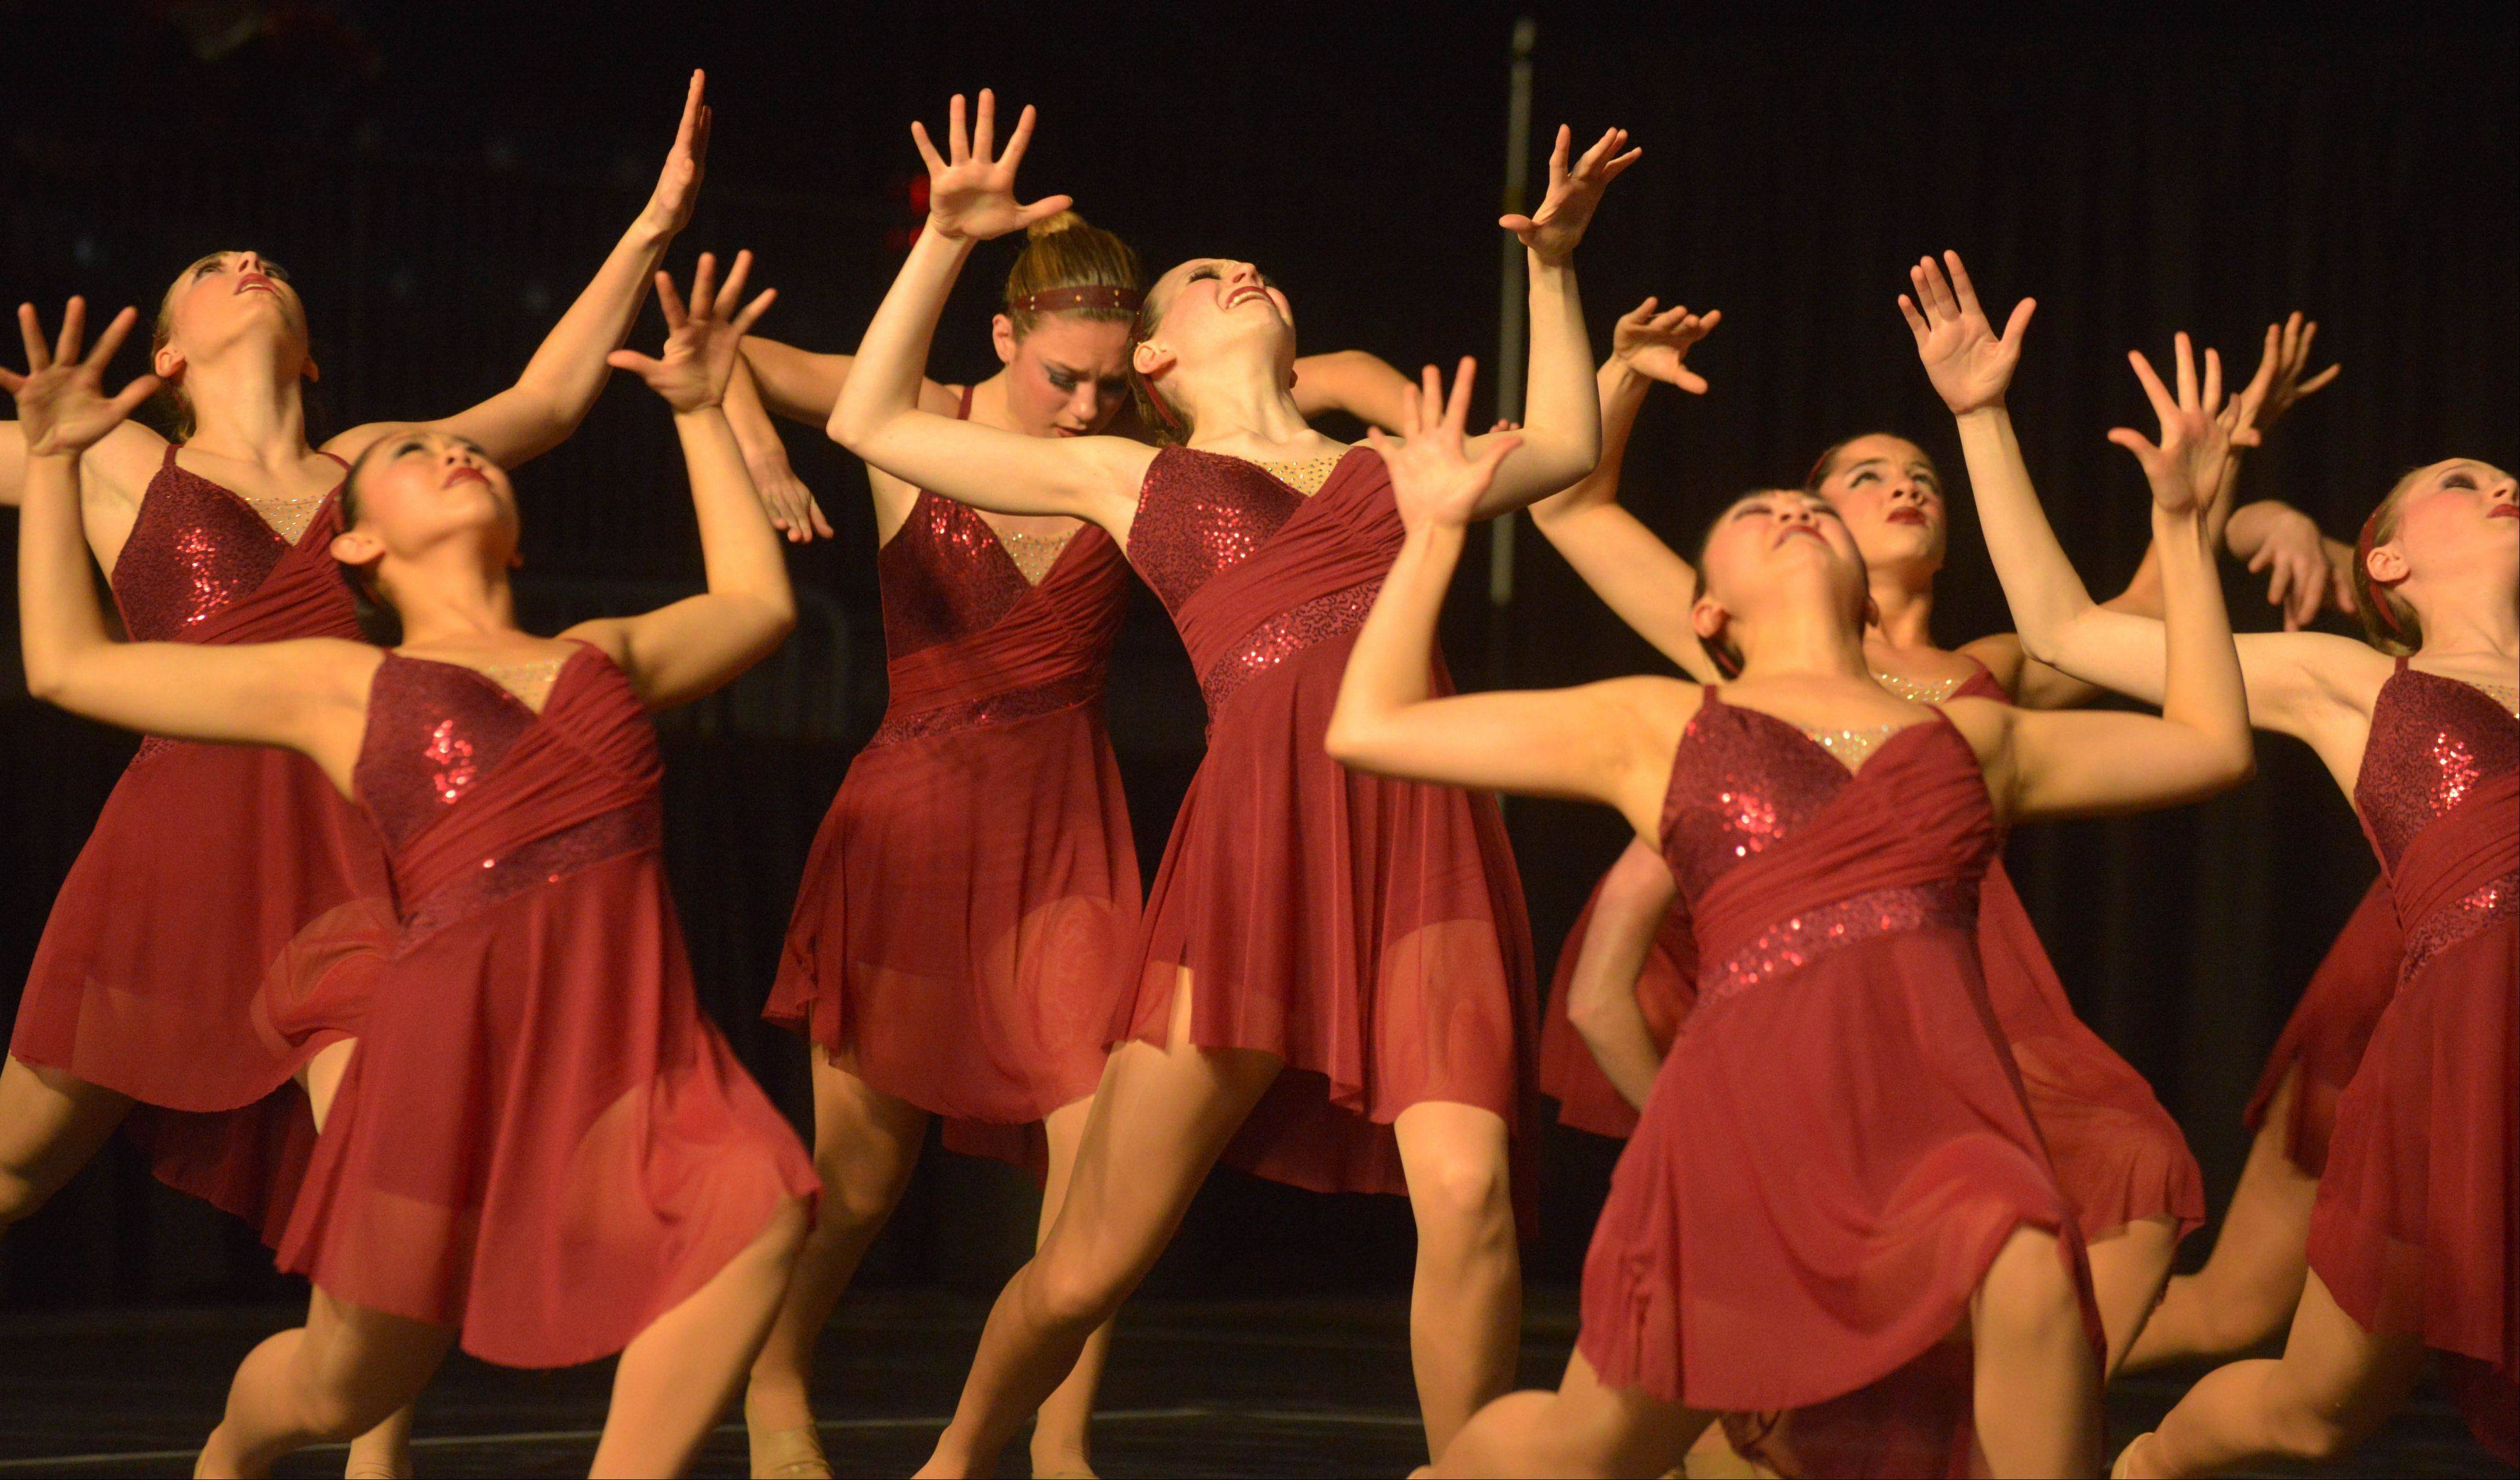 The Libertyville High School dance team takes part in the Competitive Dance preliminary round Friday at U.S. Cellular Coliseum in Bloomington.